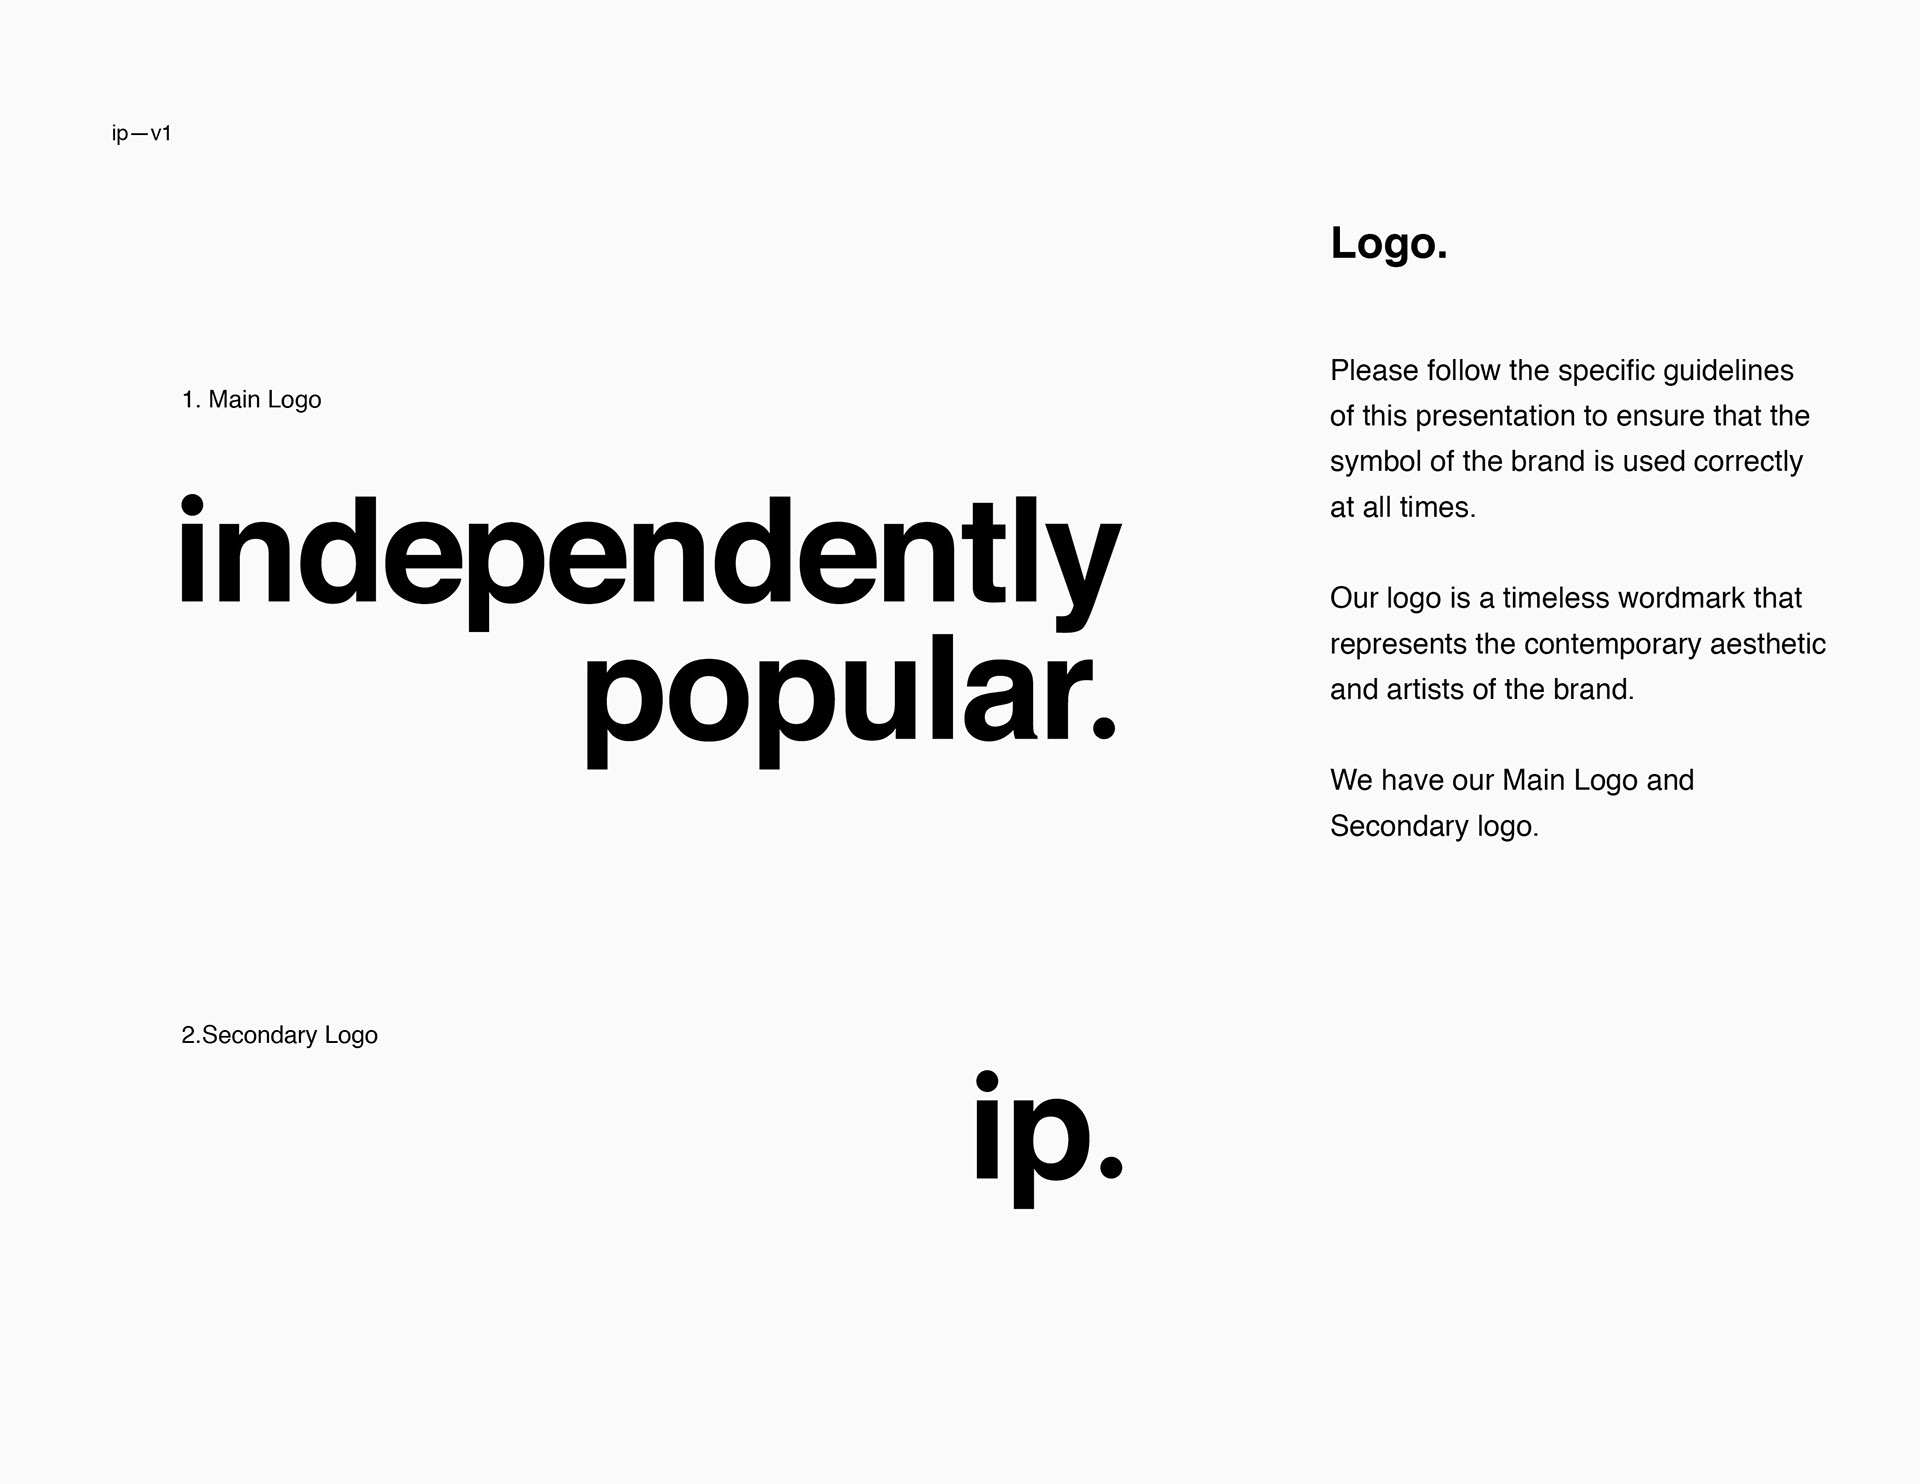 Juan duque independently popular brand guidelines logo update and brand guidelines for record label independently popular biocorpaavc Images